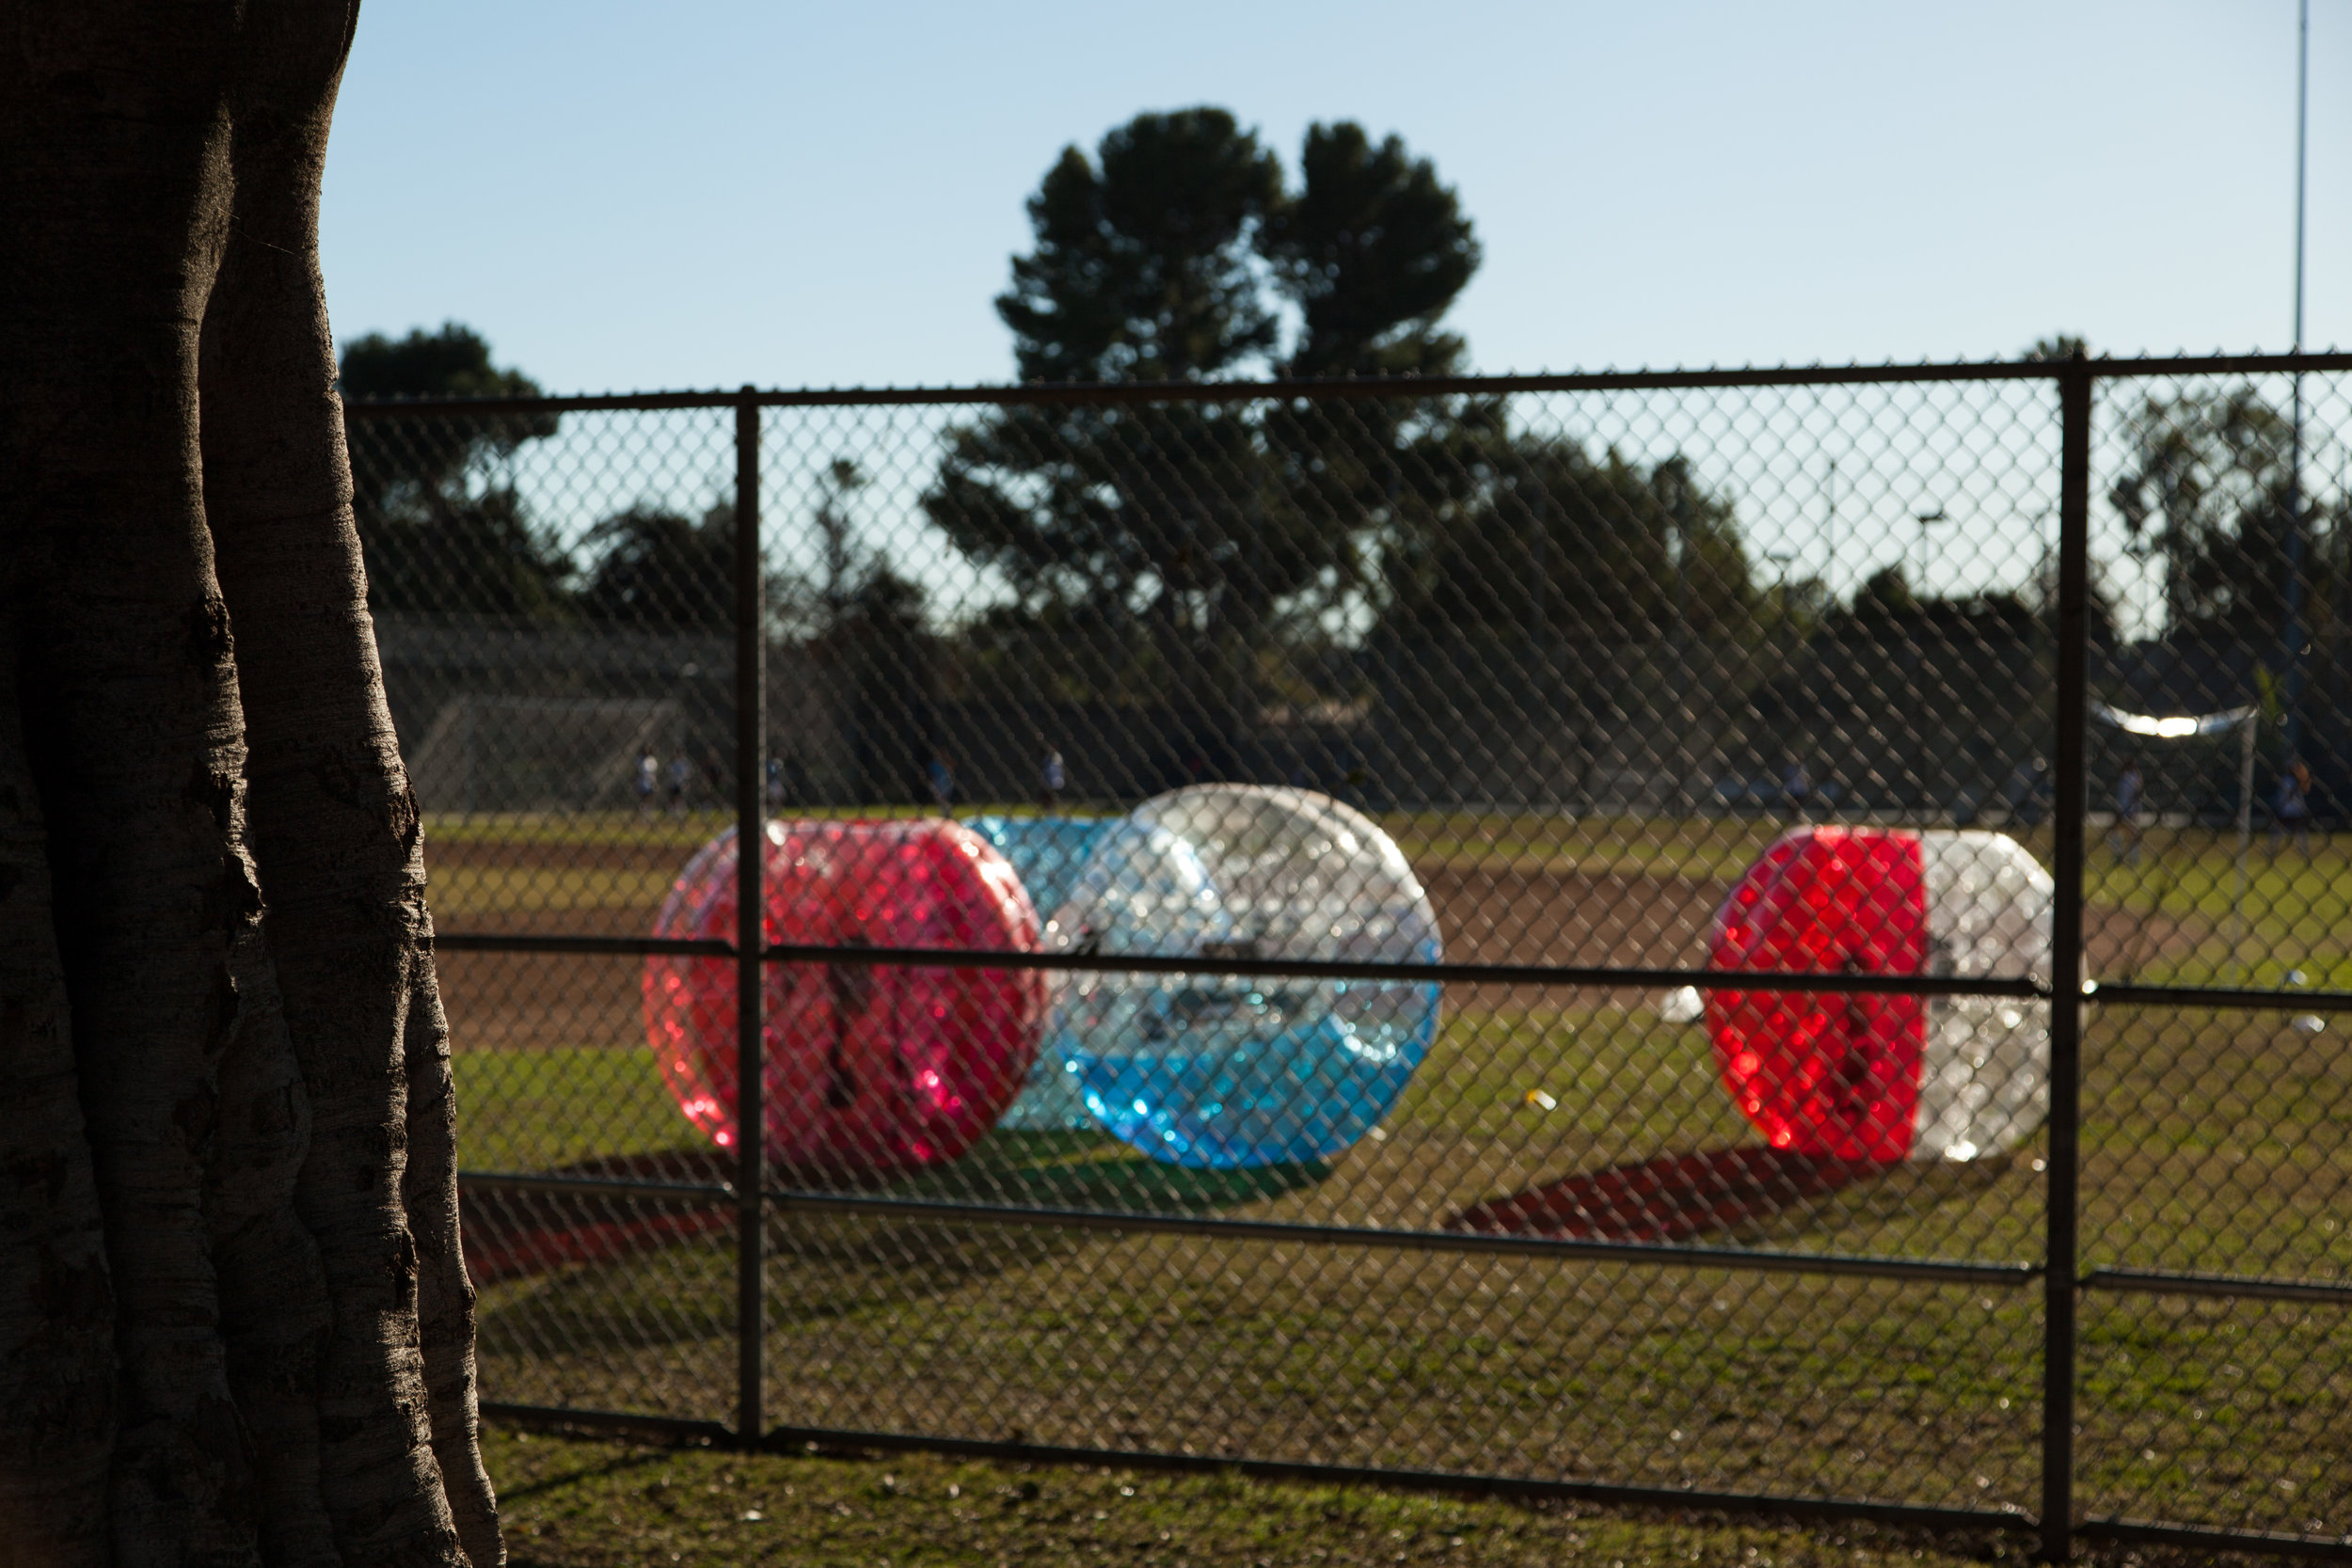 Bubble Soccer suits ready to play at a park in Glendale CA